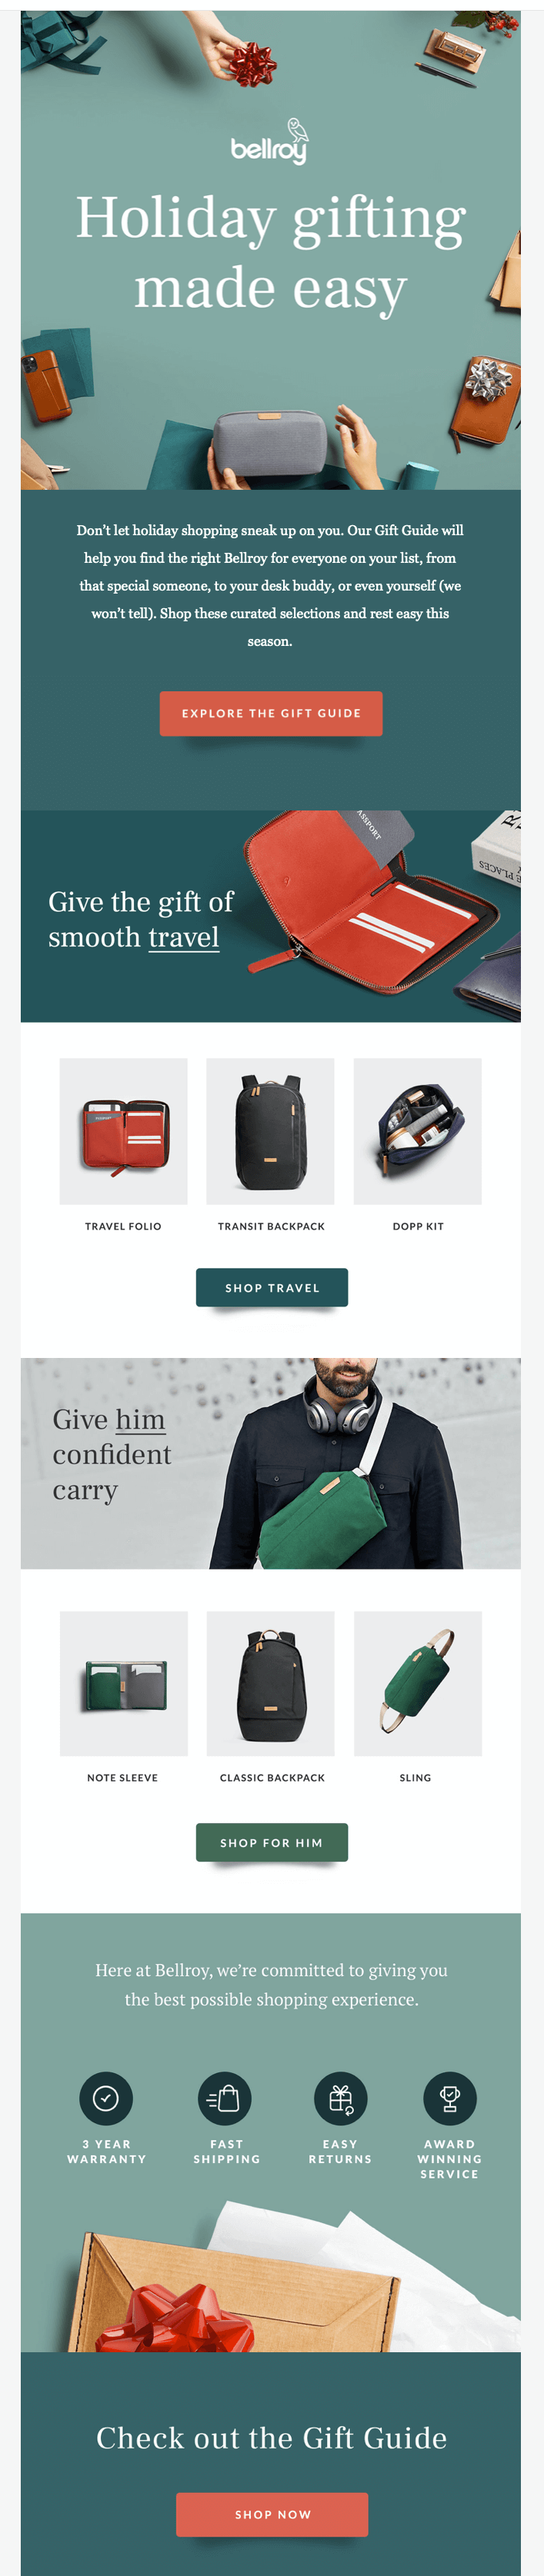 holiday-emails-bellroy